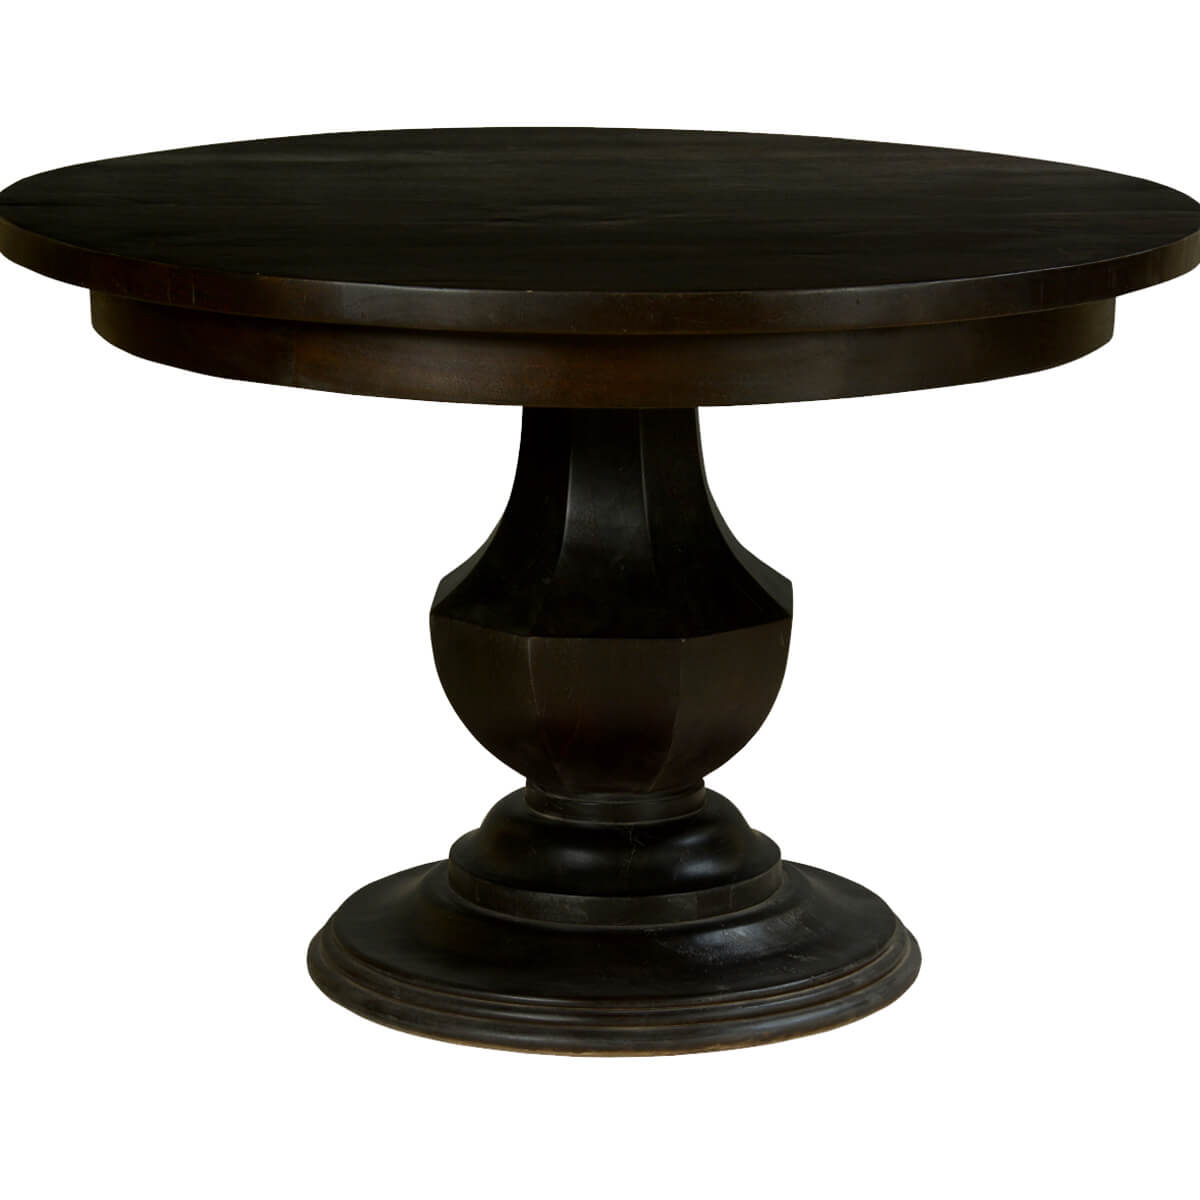 Midnight solid mango wood round pedestal dining table for Pedestal dining table